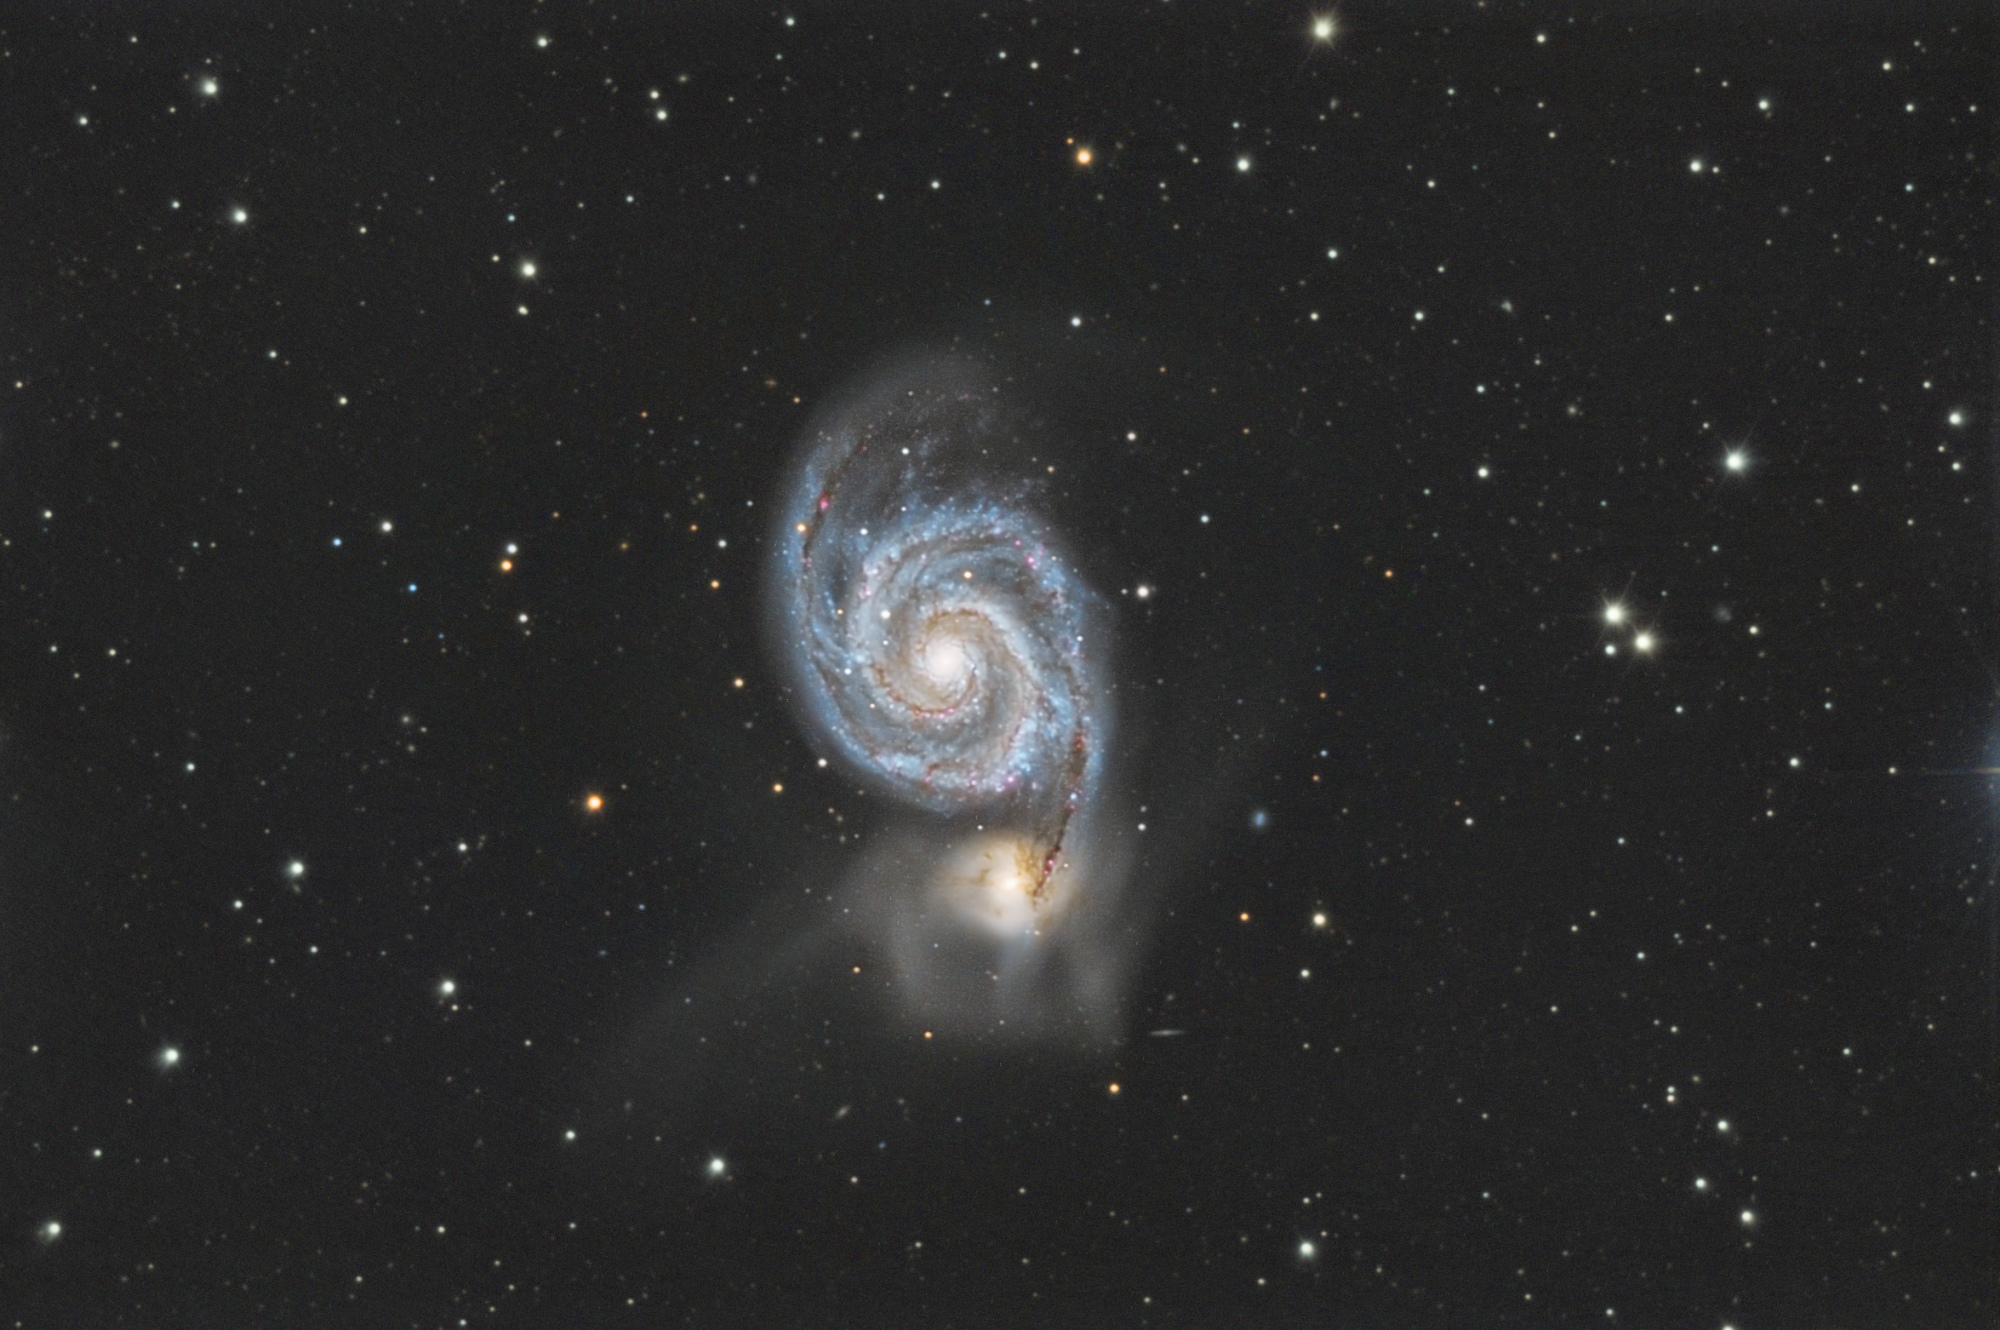 m51 -bdr- 1145 image x 1mm - zwo 071 cpafo rc250 23032020 - final pix photoshop final.jpg